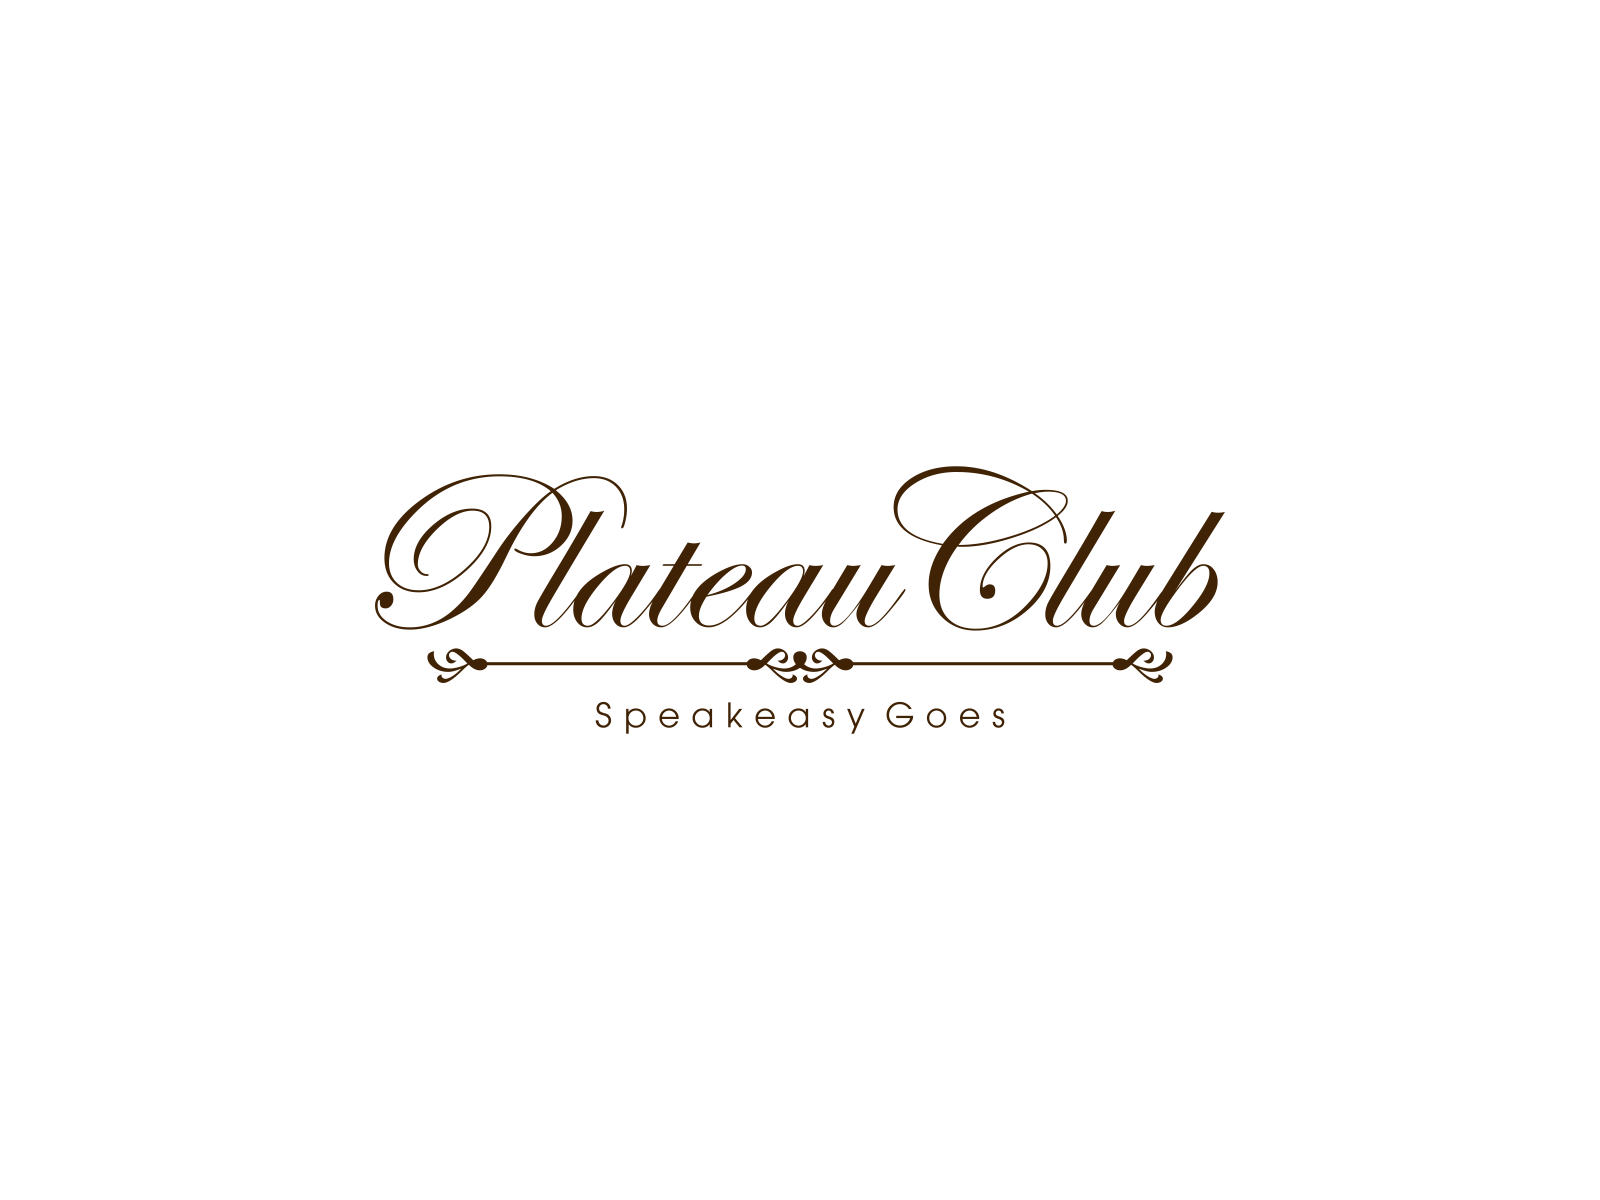 New logo wanted for Plateau Club